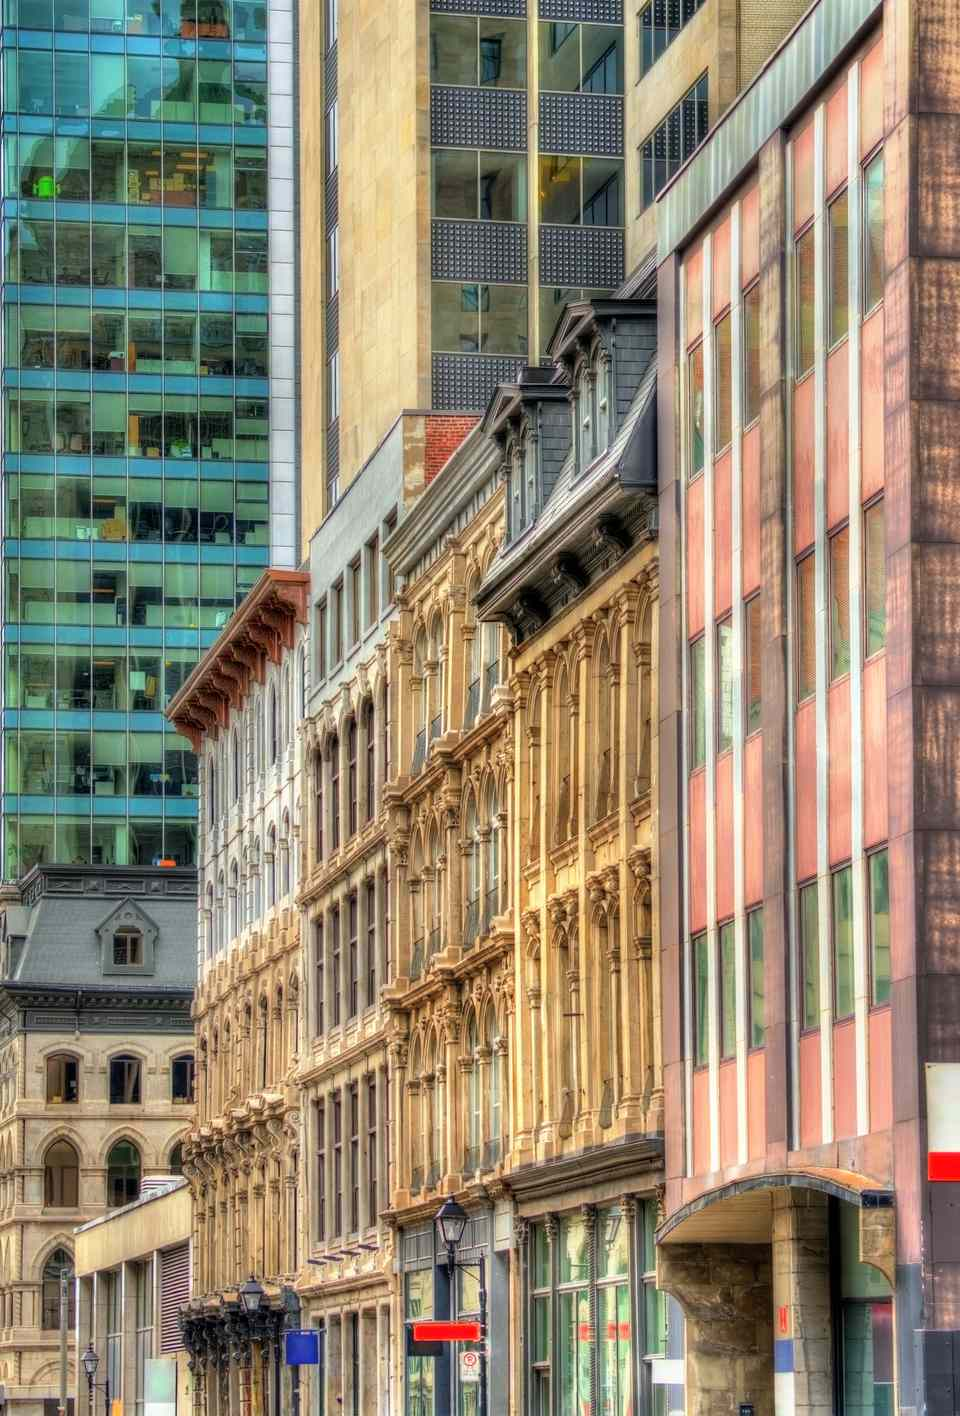 Buildings on Notre-Dame street in Old Montreal, Canada